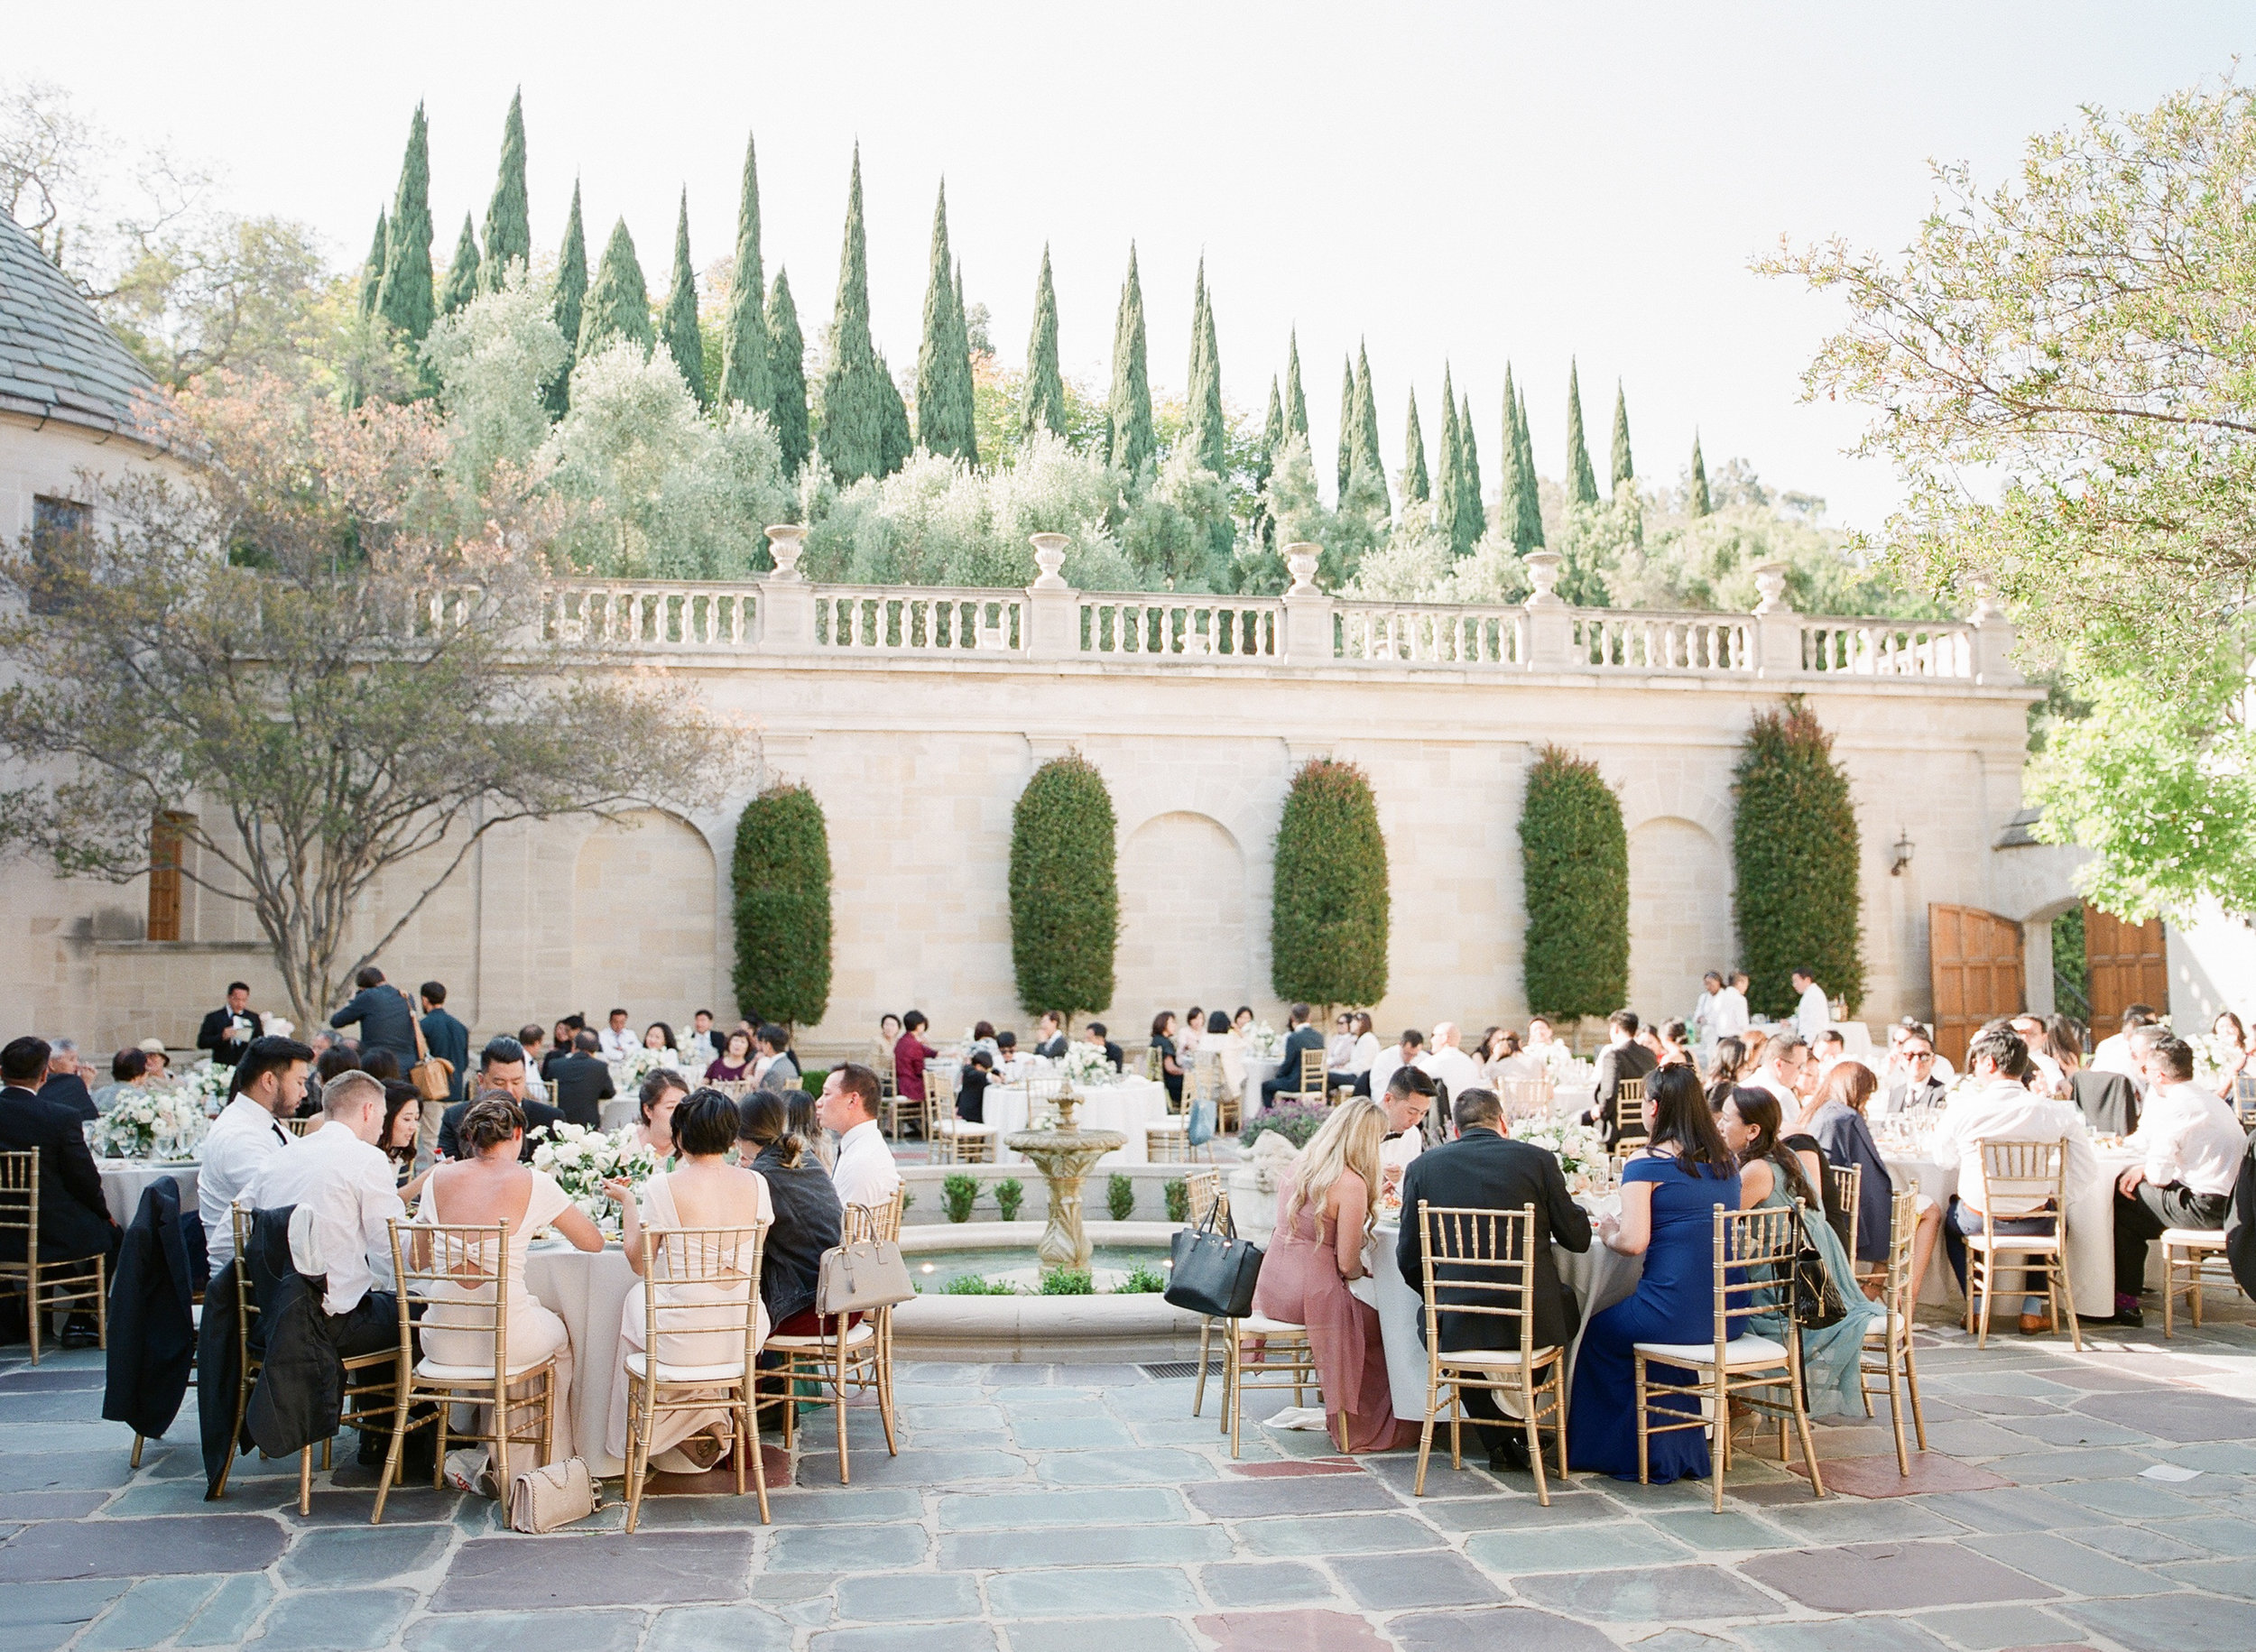 Greystone-Mansion-Wedding-Kristina-Adams-654.jpg